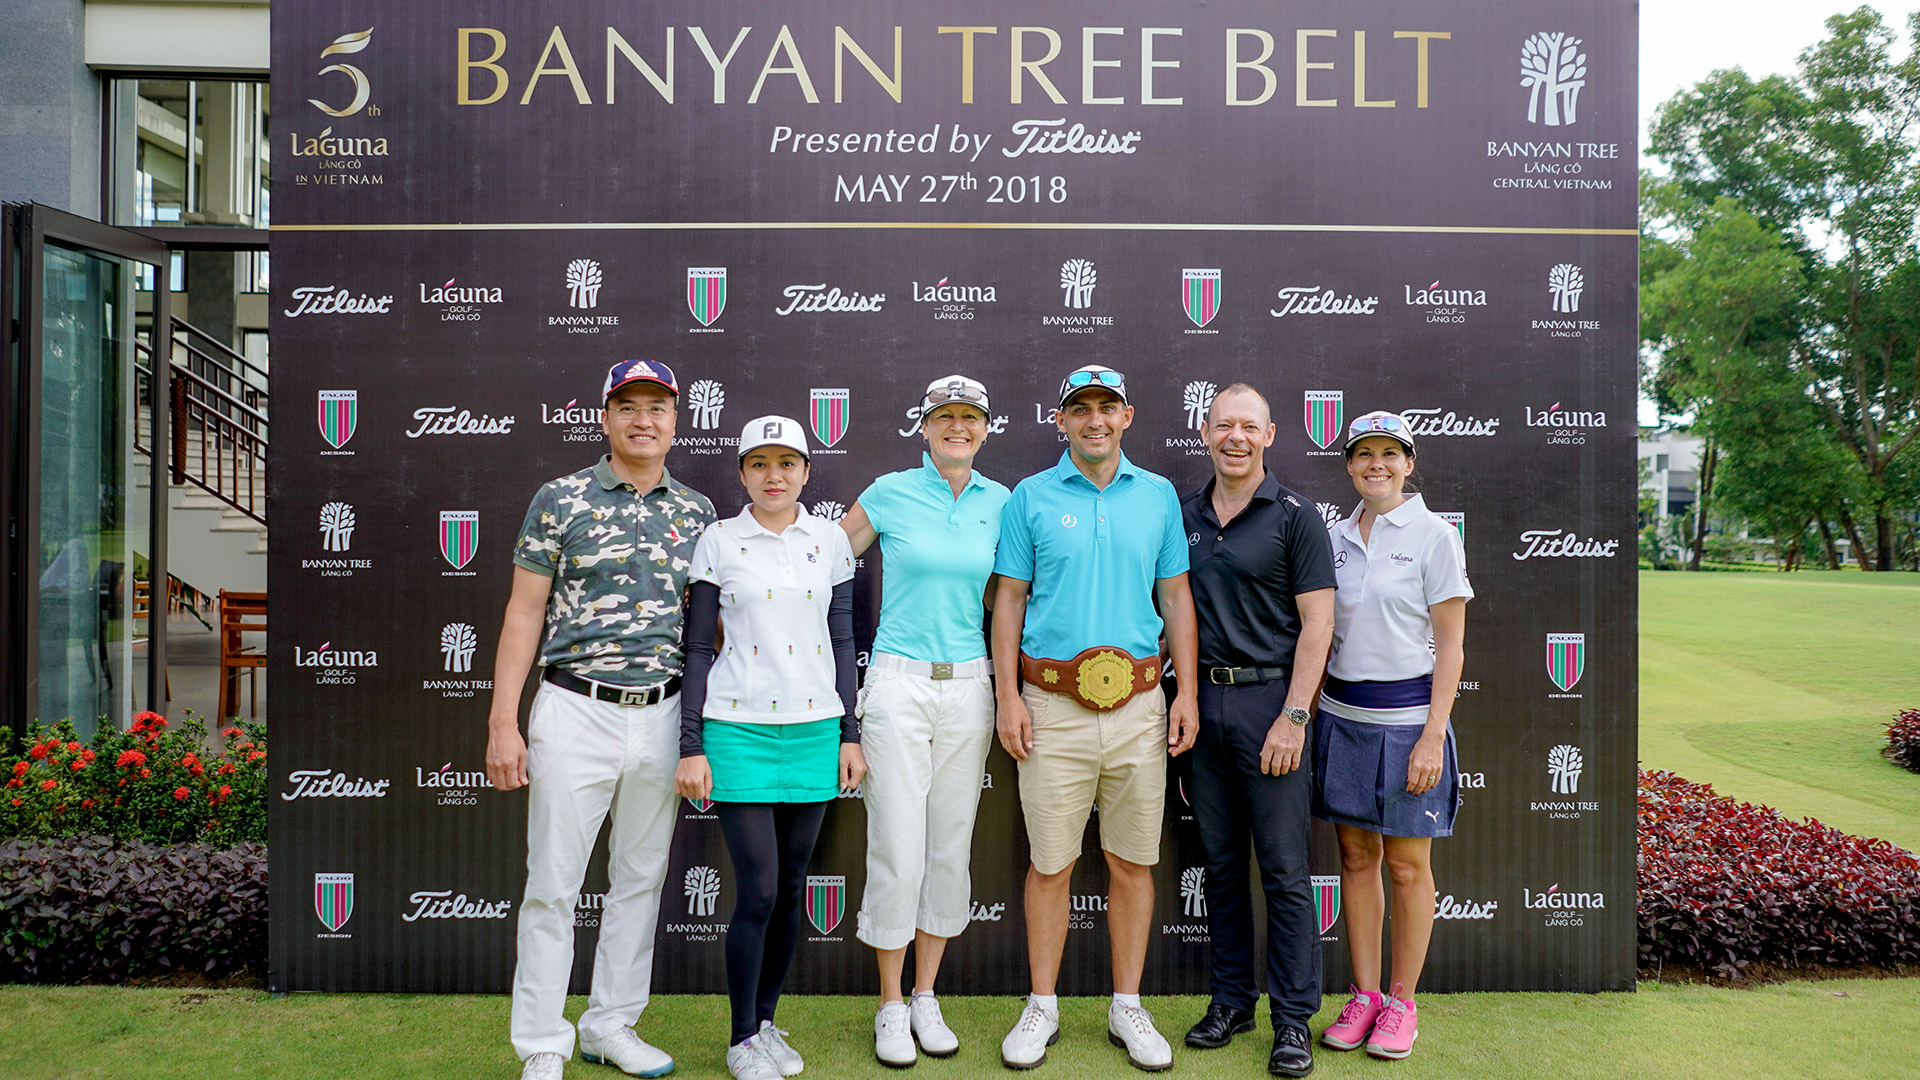 Banyan Tree Belt – an honoring tournament hosted on Faldo's favorite design